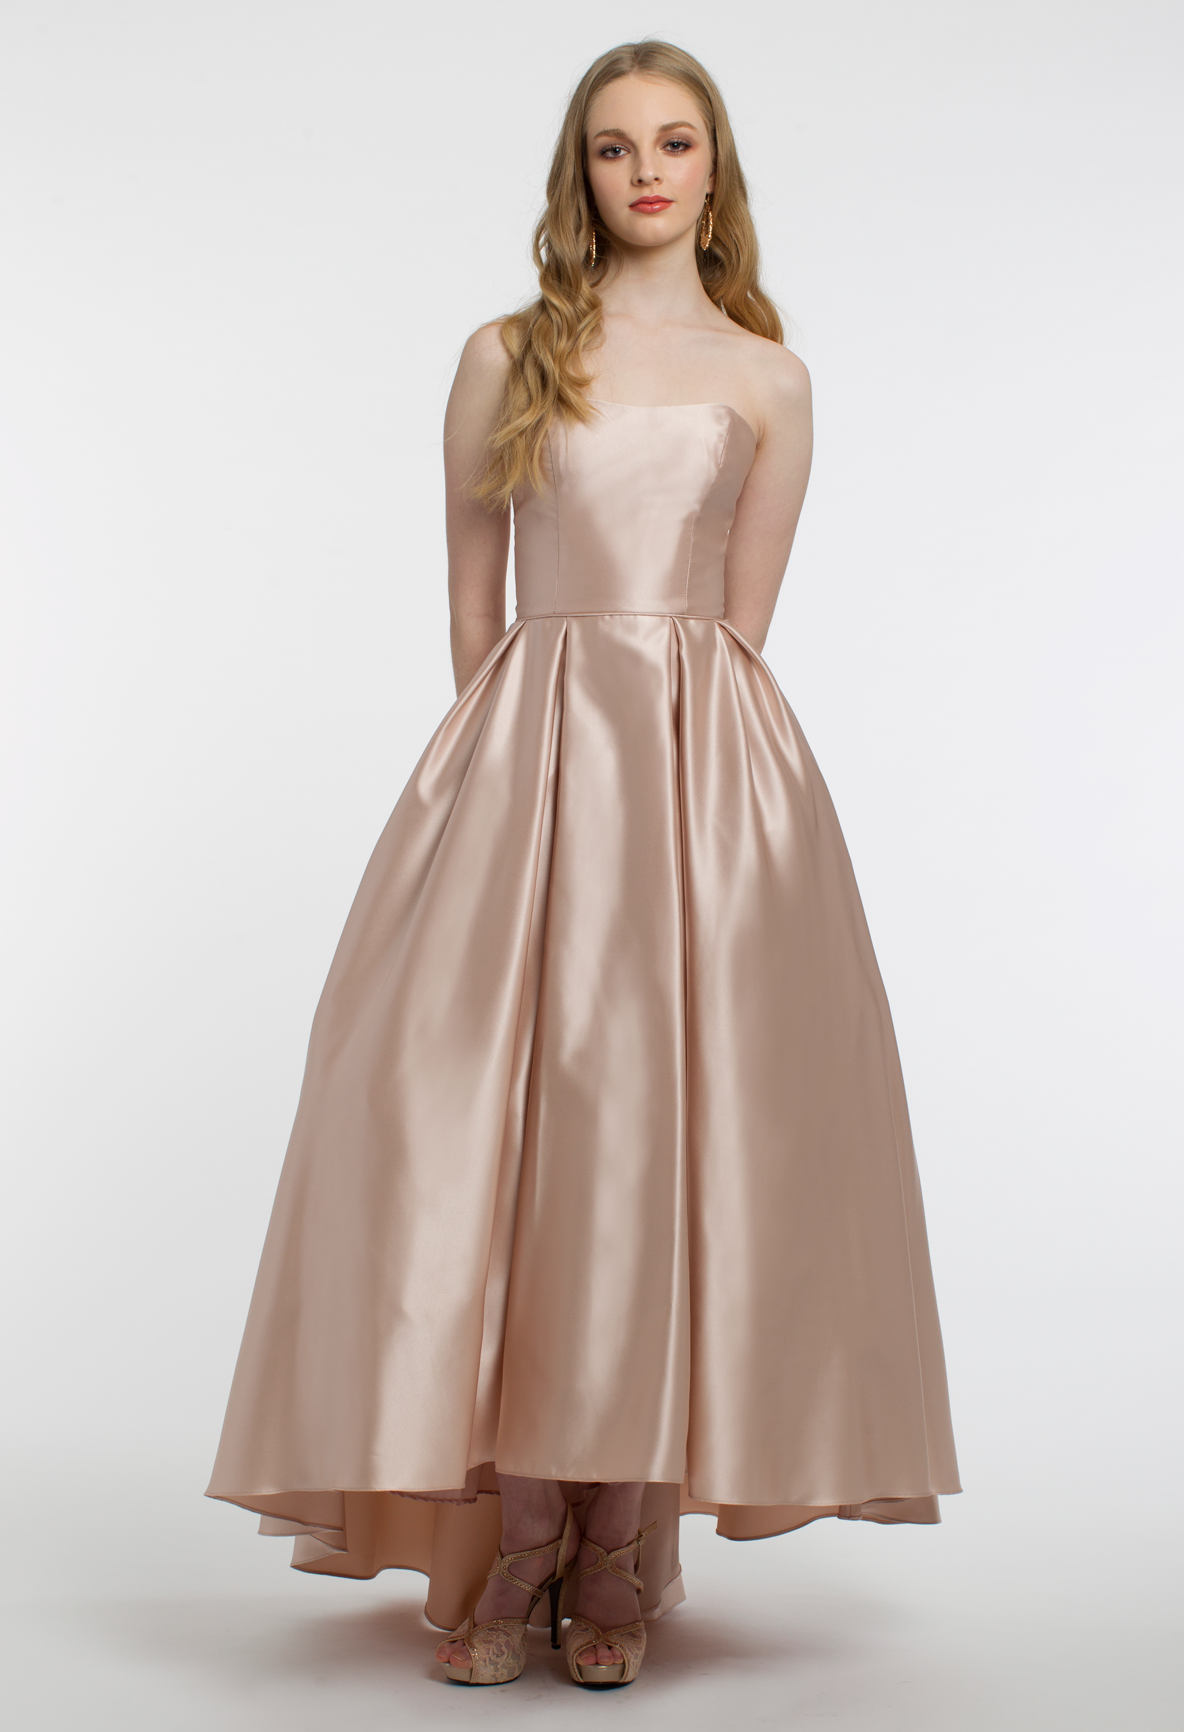 Satin High Low Dress With Pockets Dresses High Low Prom Dress Strapless Prom Dresses [ 1732 x 1184 Pixel ]